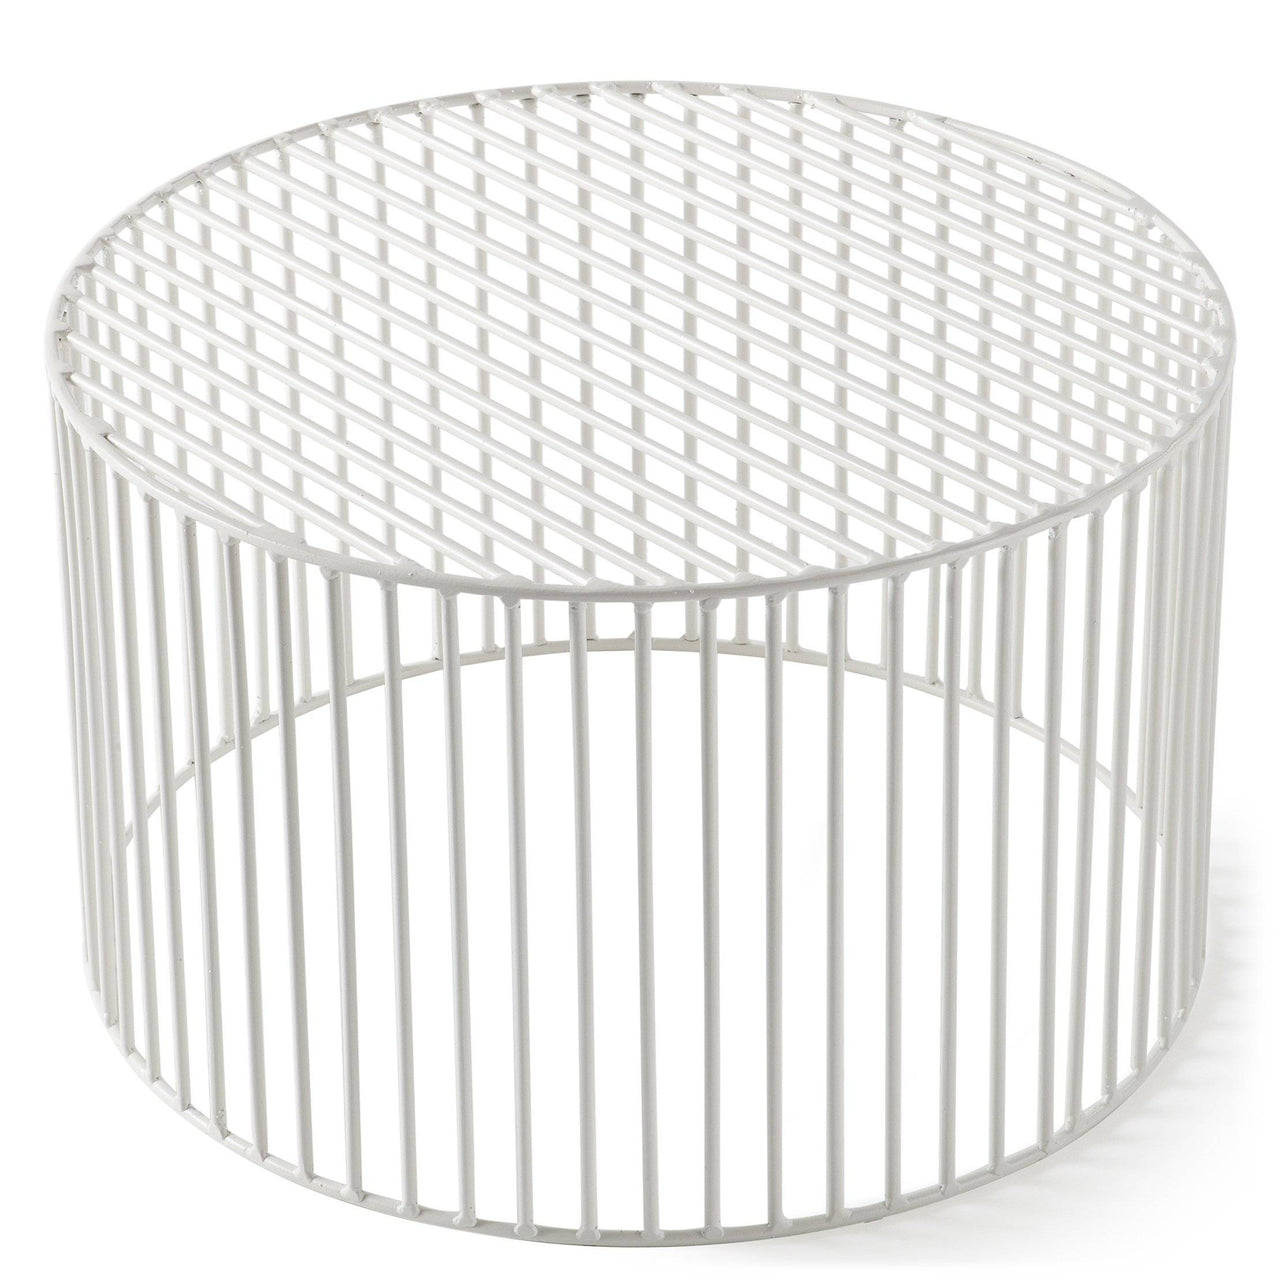 Tamburo Side Table: Large + Signal White